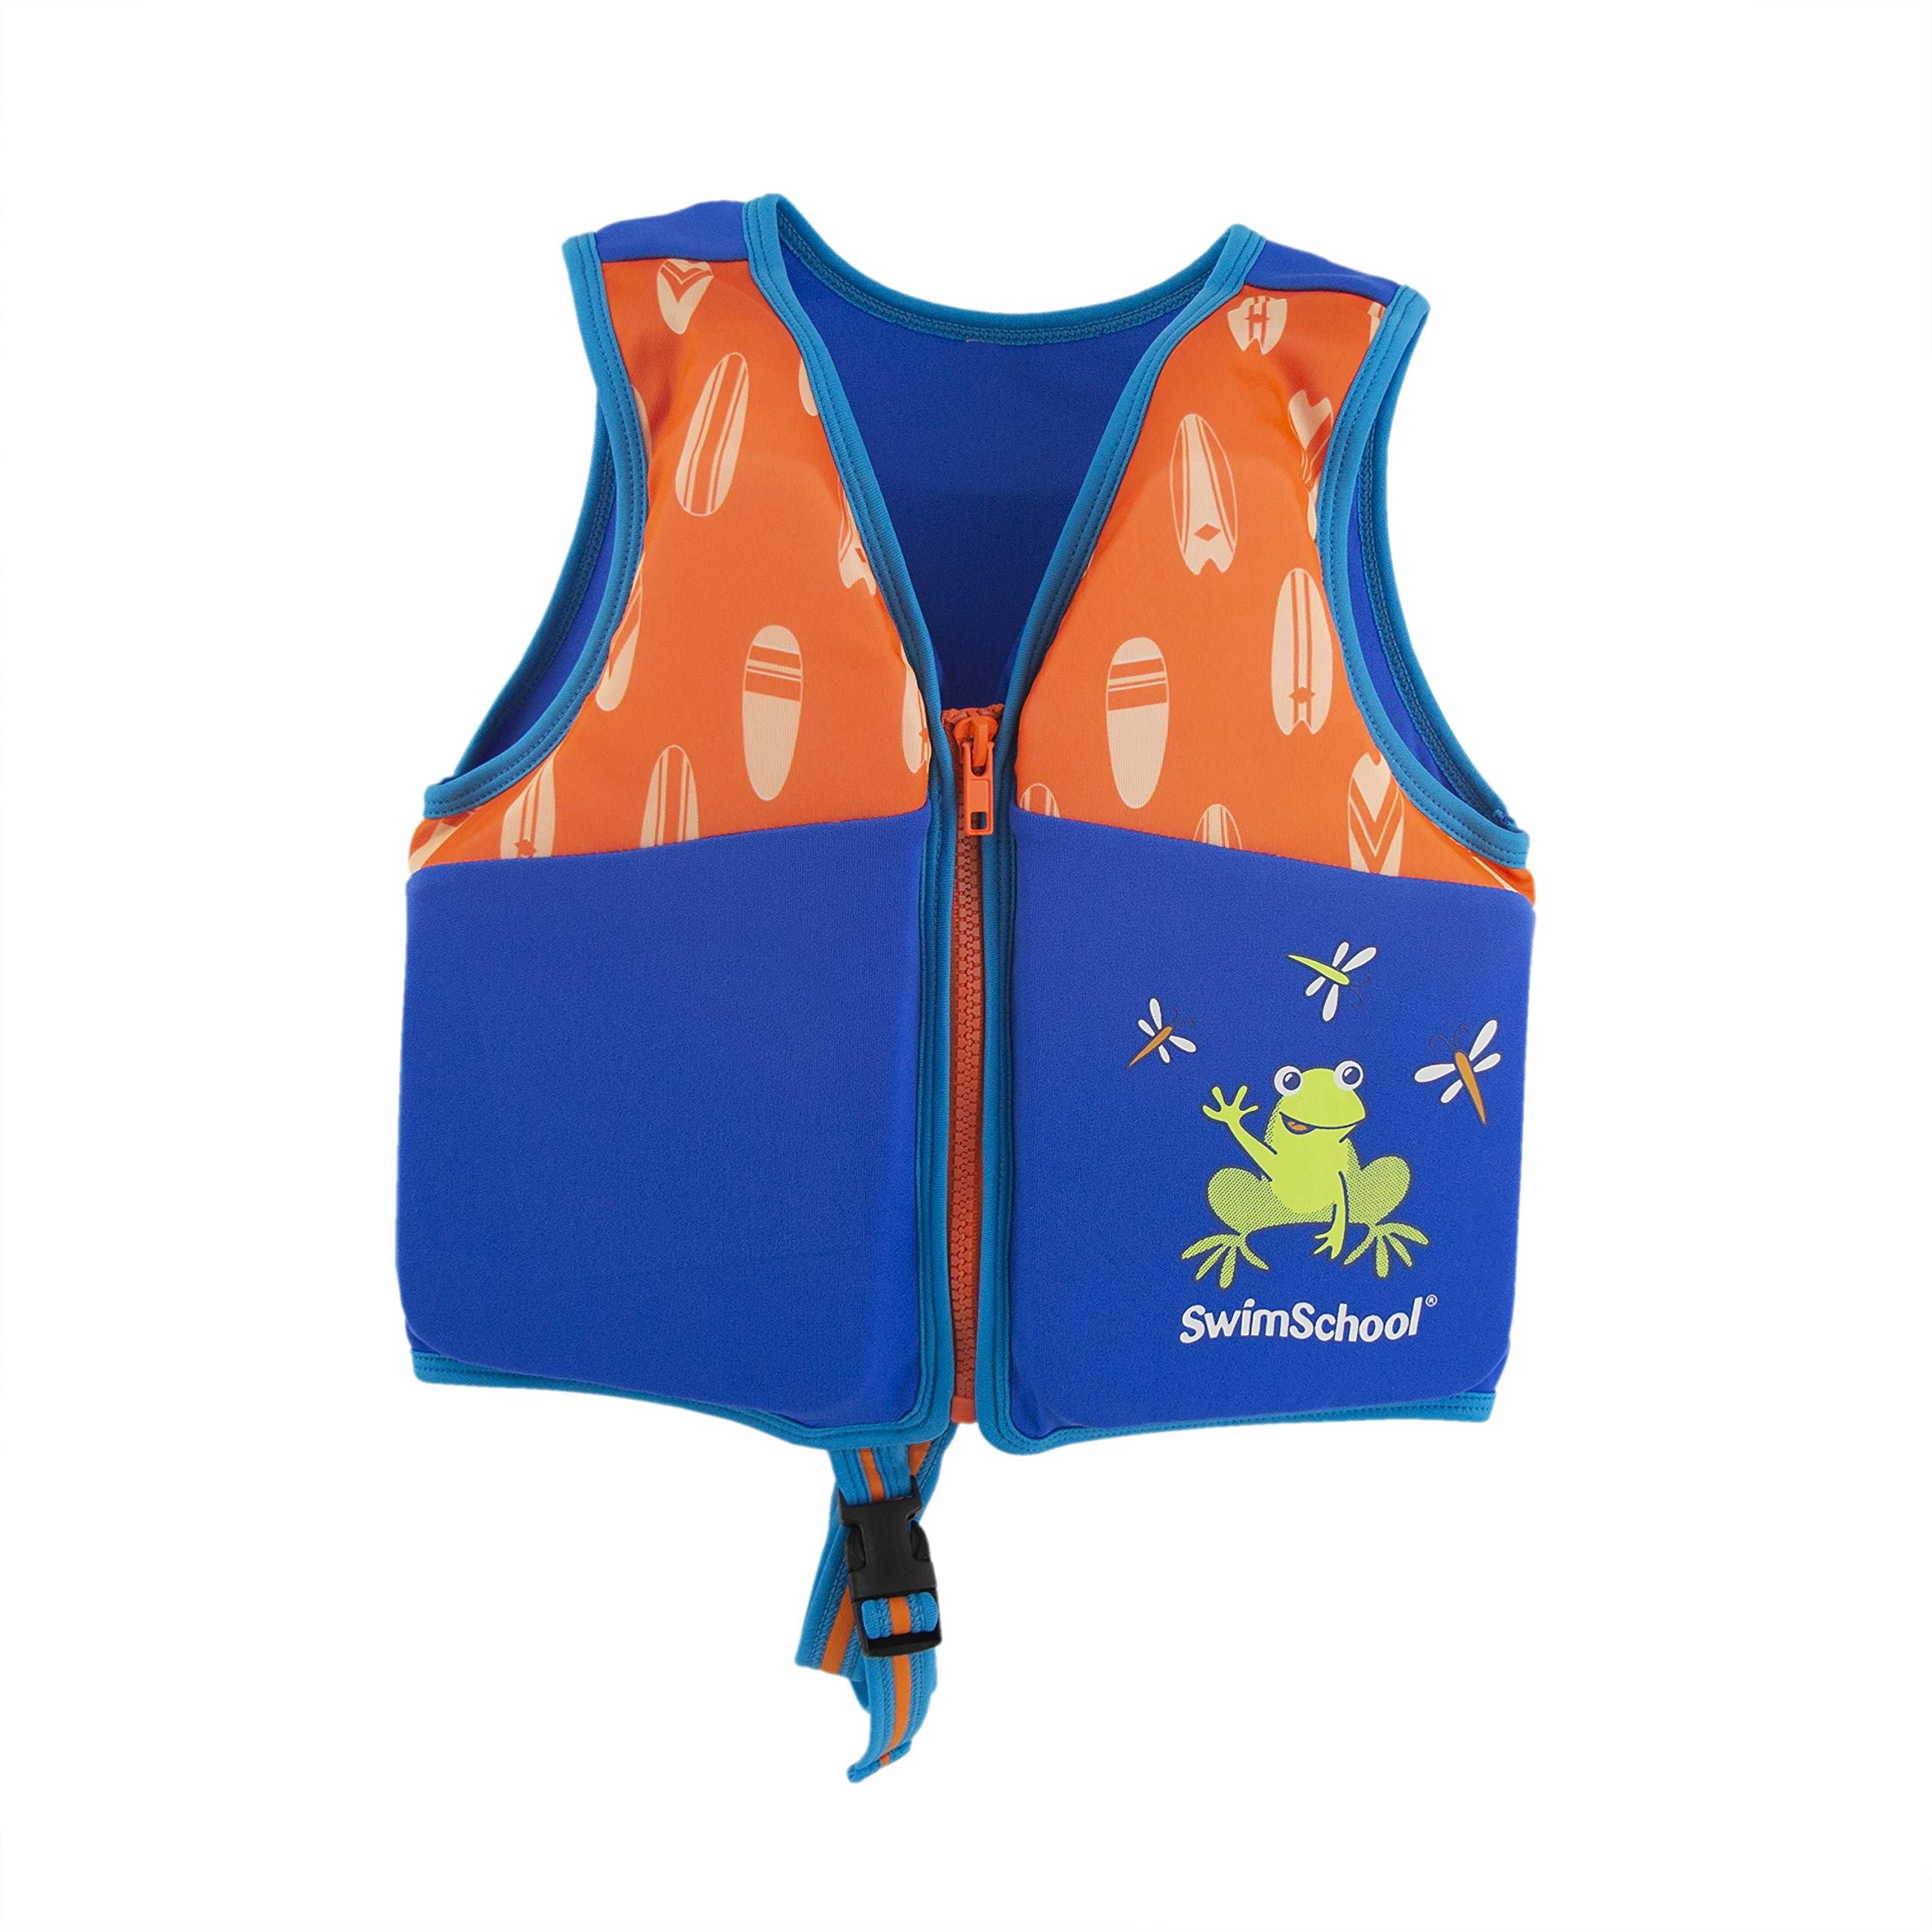 SwimSchool New & Improved Swim Trainer Vest, Flex-Form, Adjustable Safety Strap, Easy on and Off, Small/Medium, Up to 33 lbs., Blue/Orange by SwimSchool (Image #5)